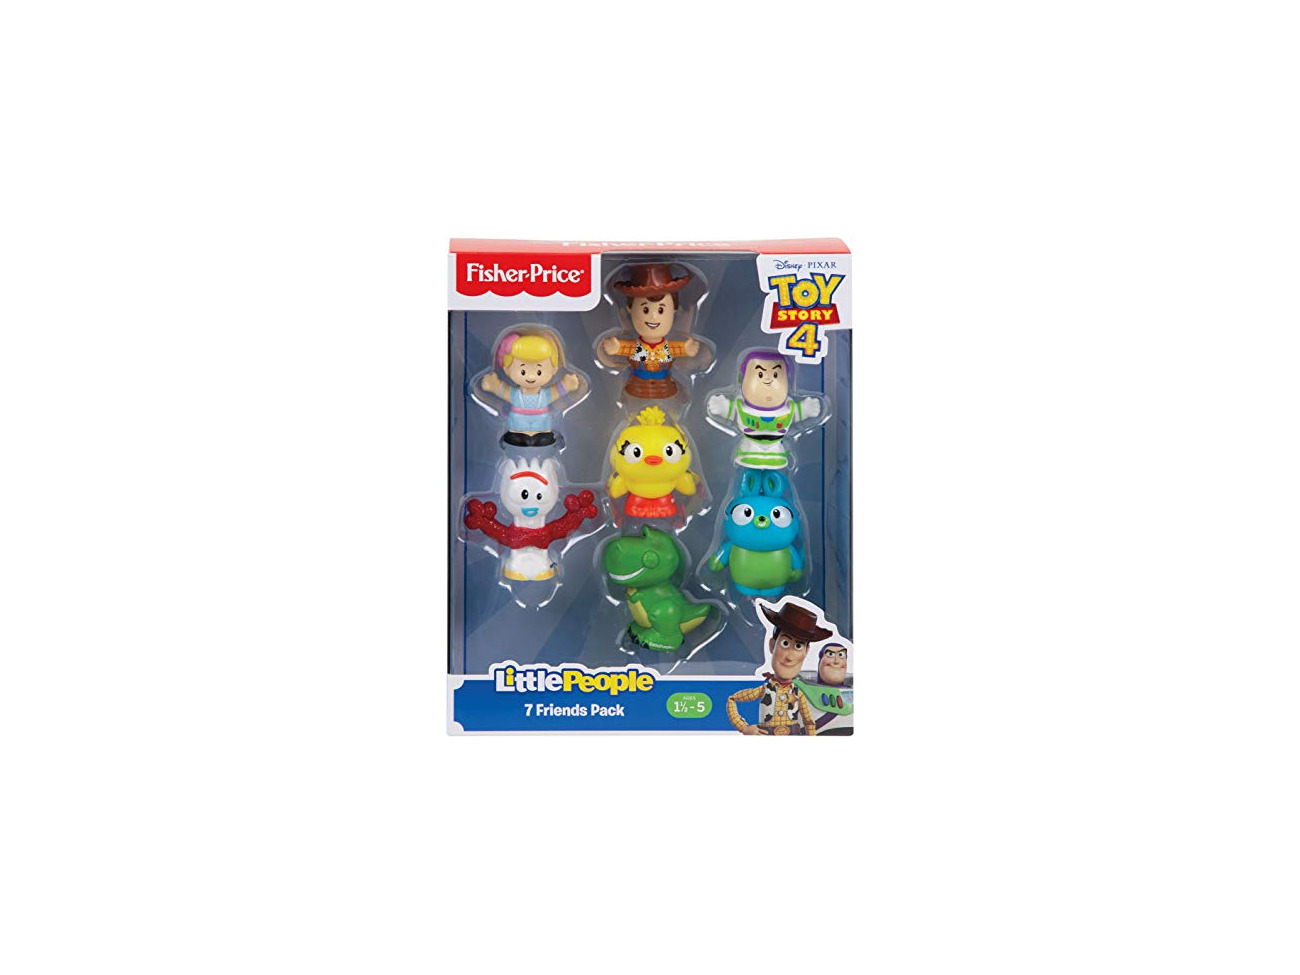 Disney GFD12 Little People Disney toy story 7-Figurine Pack